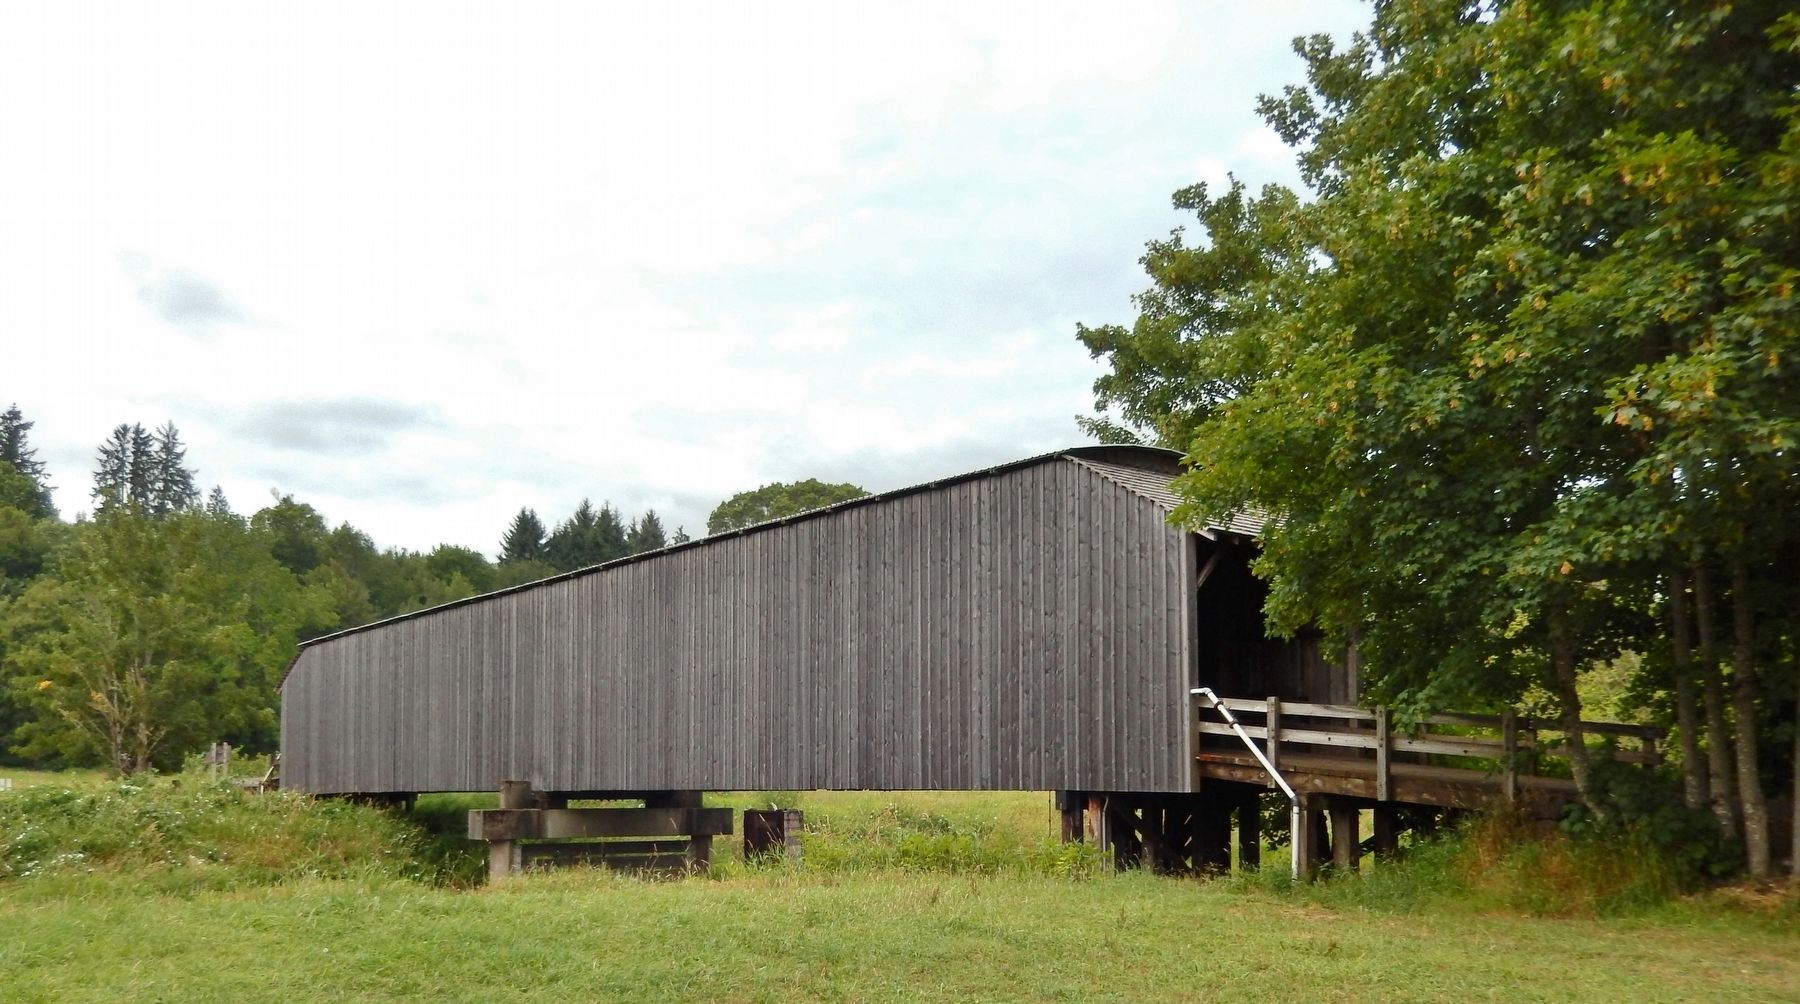 Grays River Covered Bridge (<i>view from Ahlberg Park marker</i>) image. Click for full size.